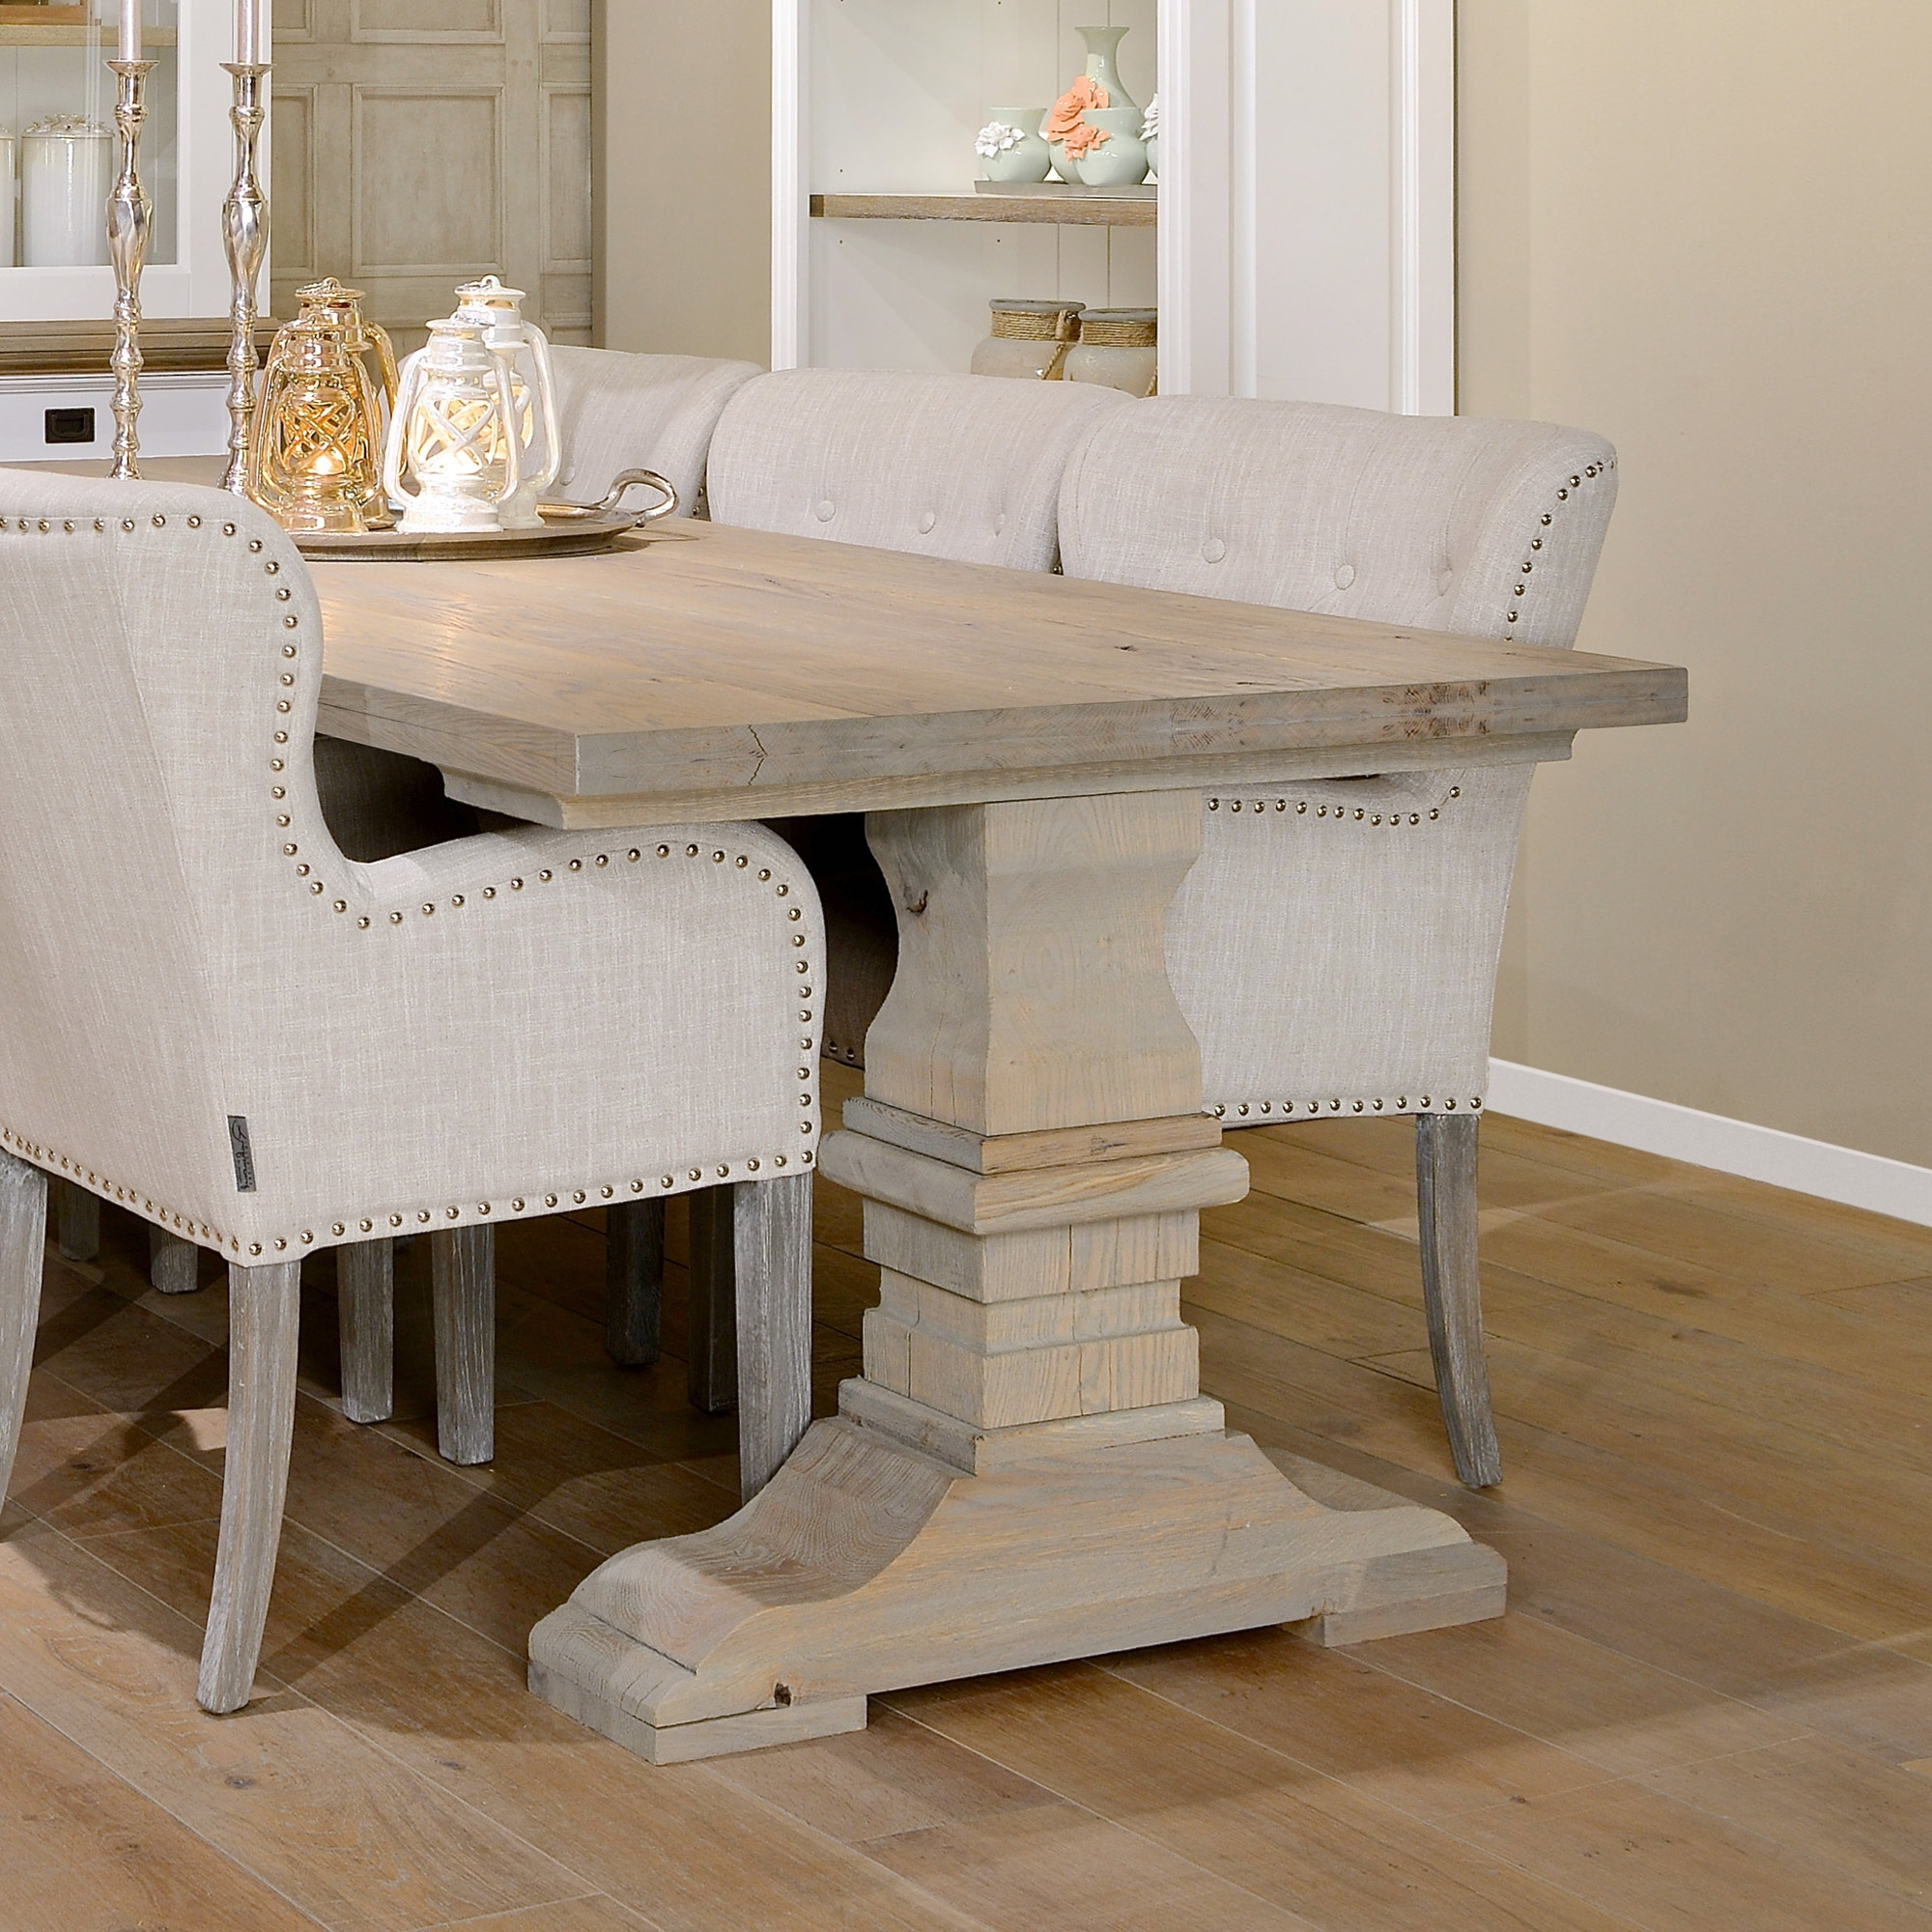 Most Popular Oak Dining Tables Intended For Castle Oak Dining Table (View 14 of 25)